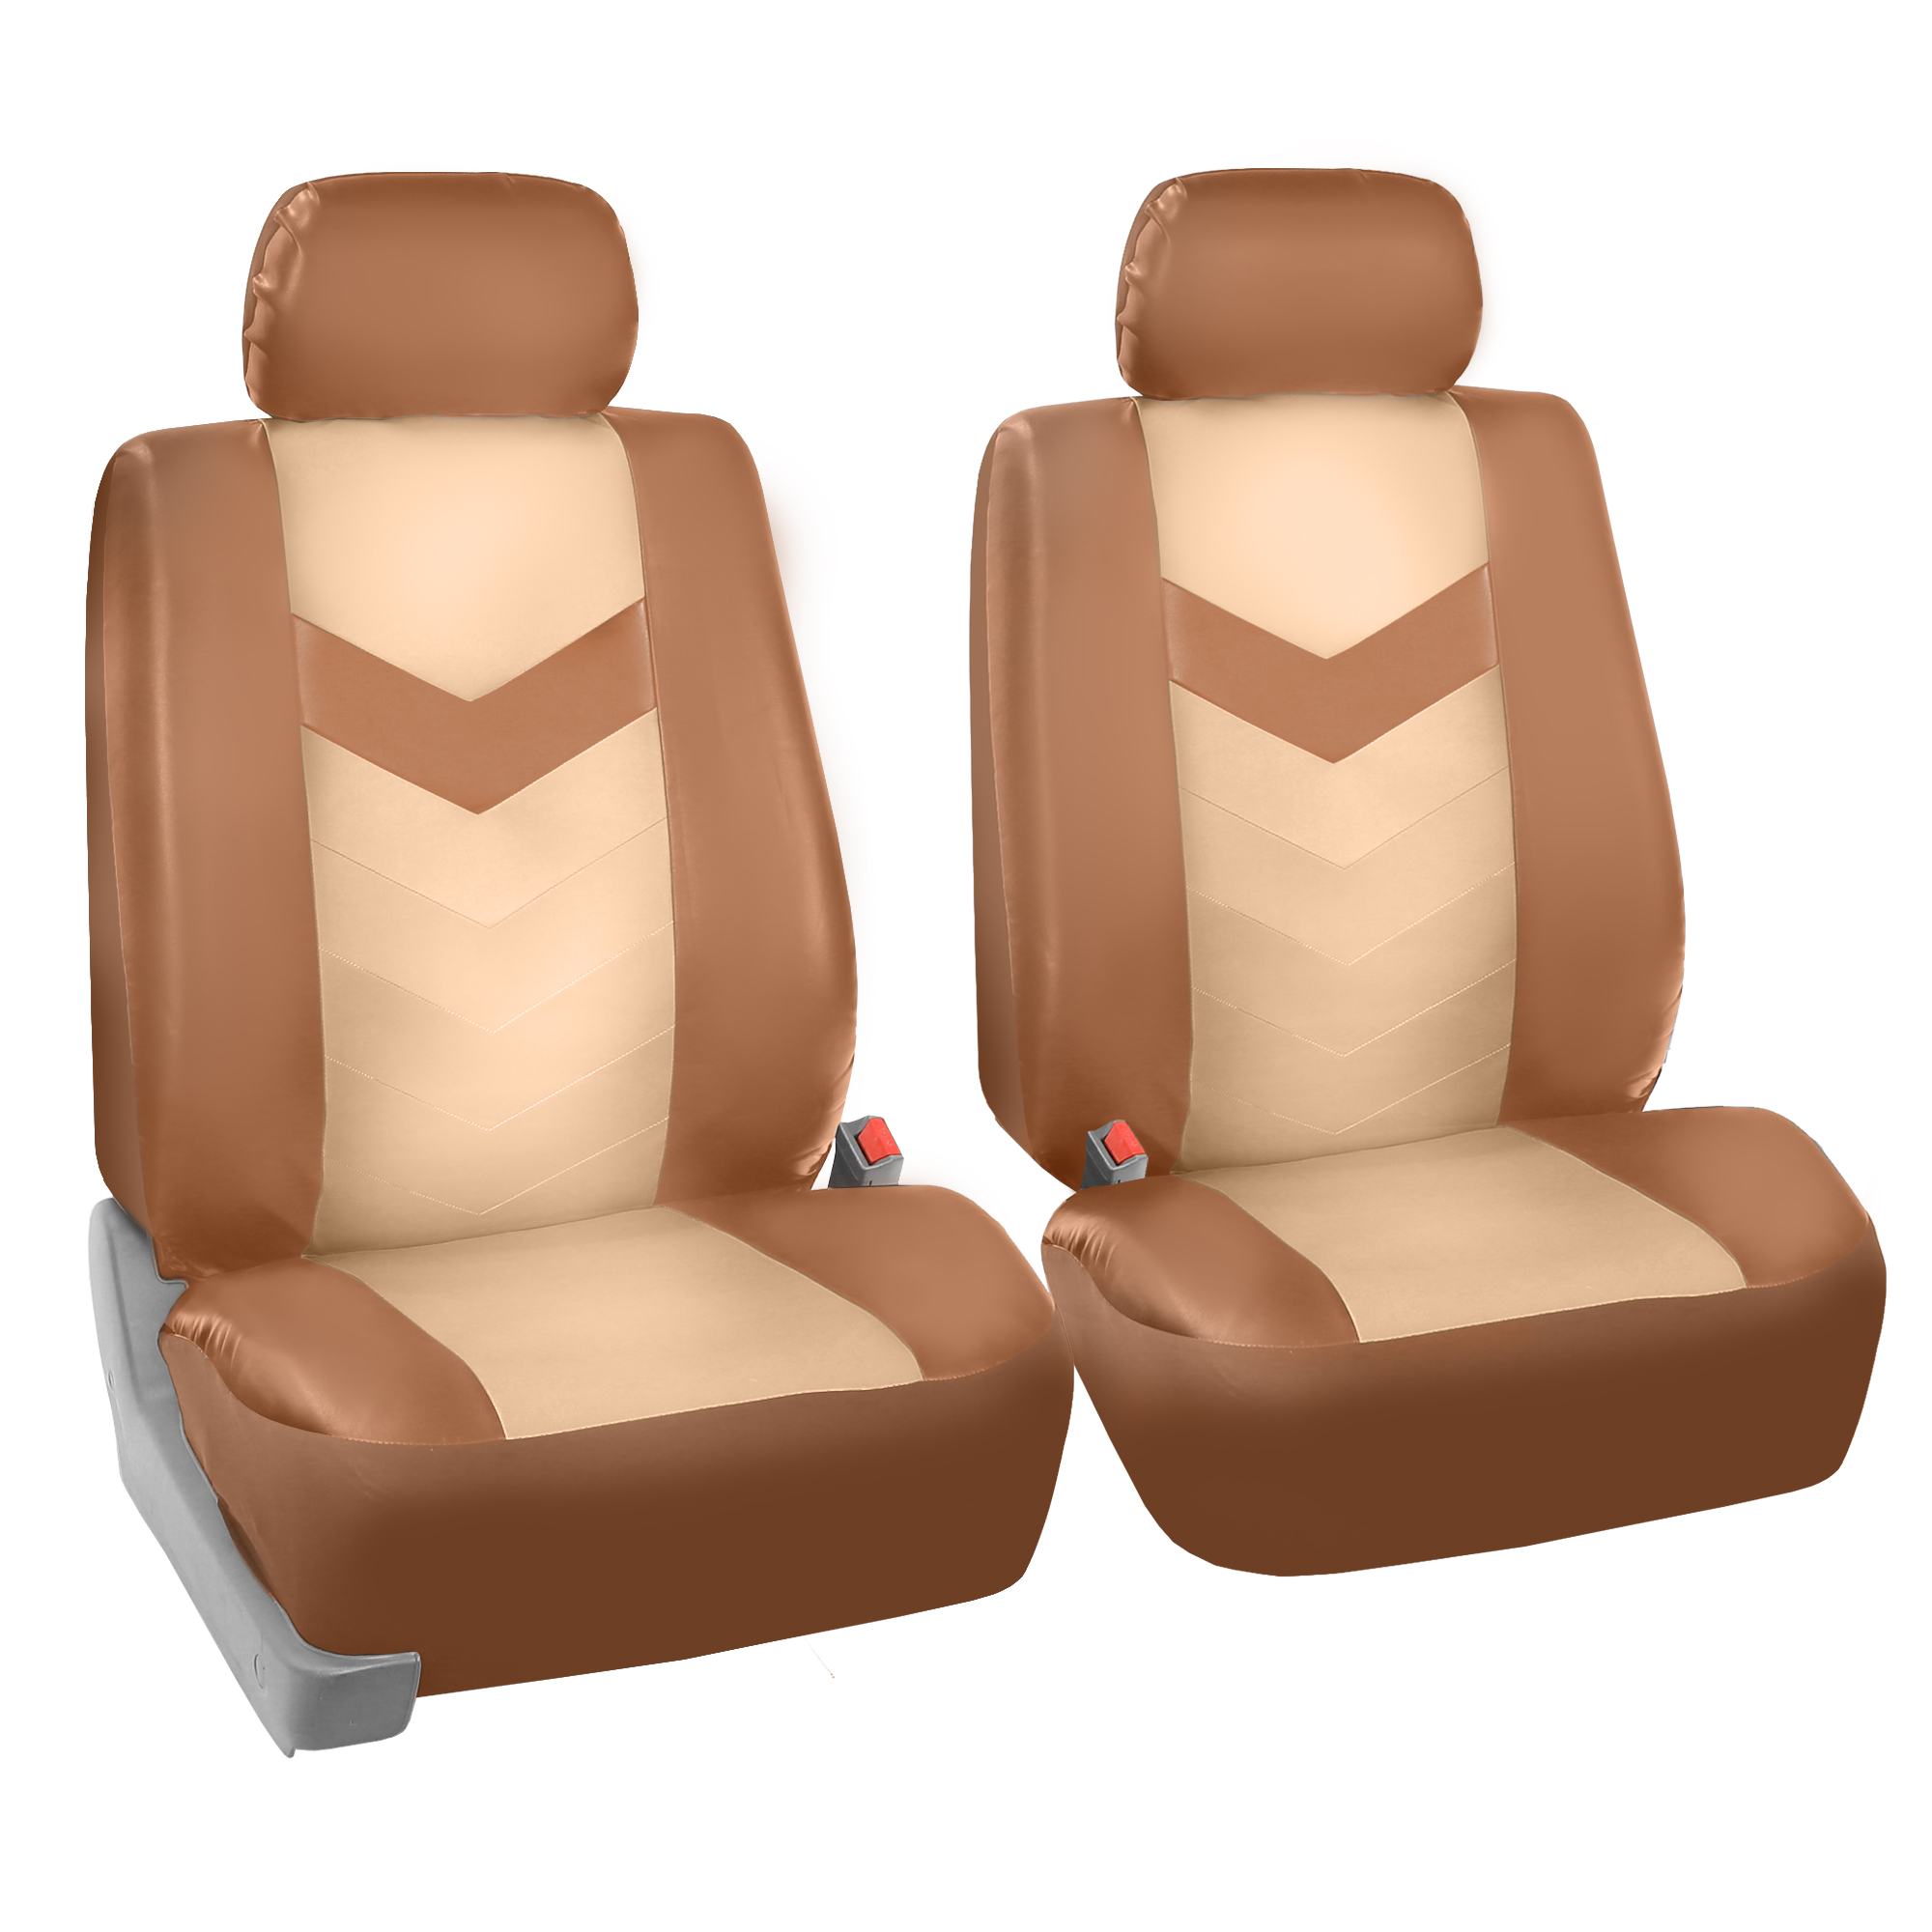 Free Gift Synthetic Leather Car Seat Covers for Auto with Accessories